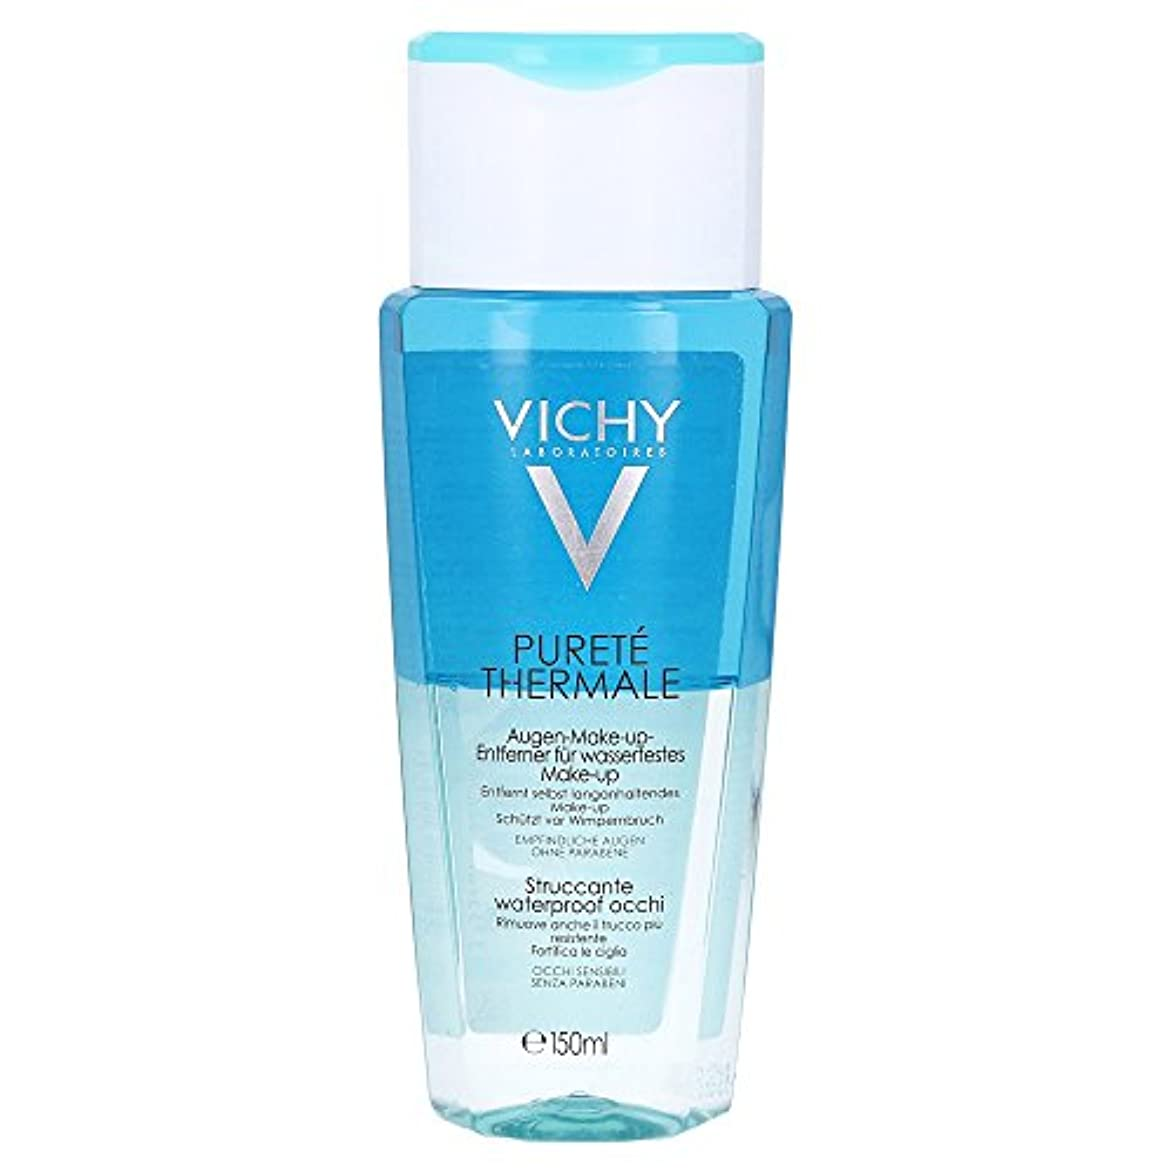 Vichy Purete Thermale Biphasic Cleansing Lotion Eyes 150ml [並行輸入品]